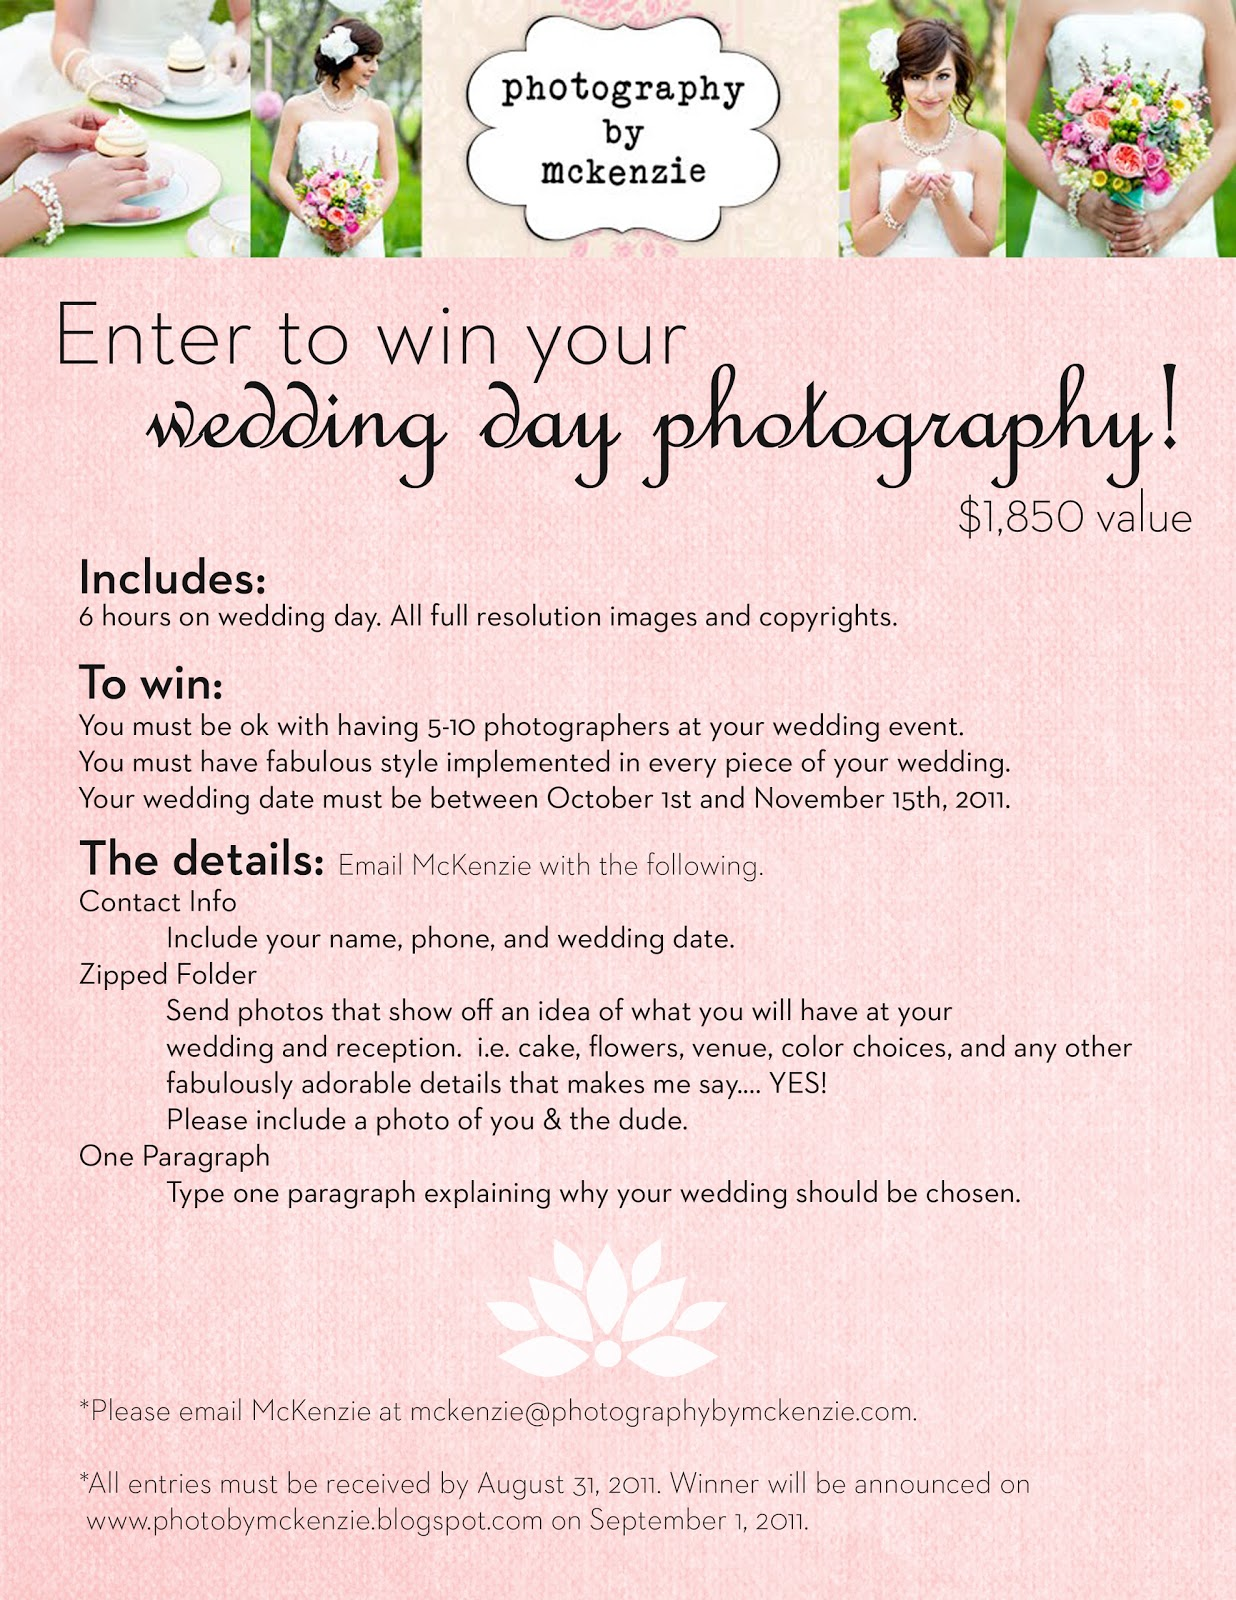 FREE wedding day photography?